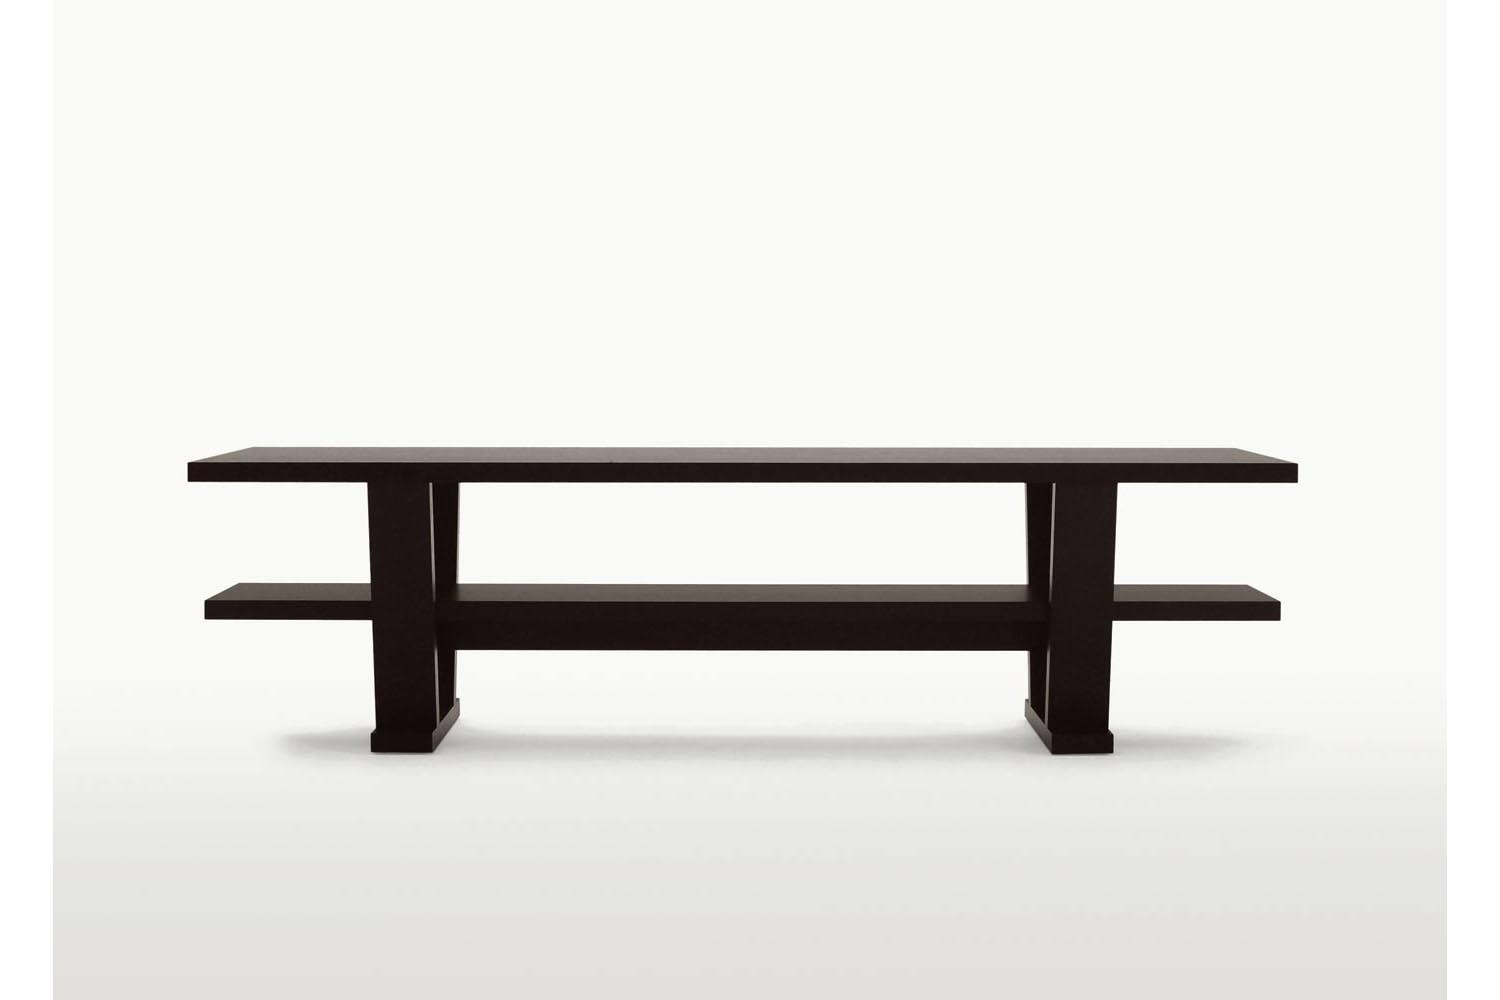 Cicero Console by Antonio Citterio for Maxalto